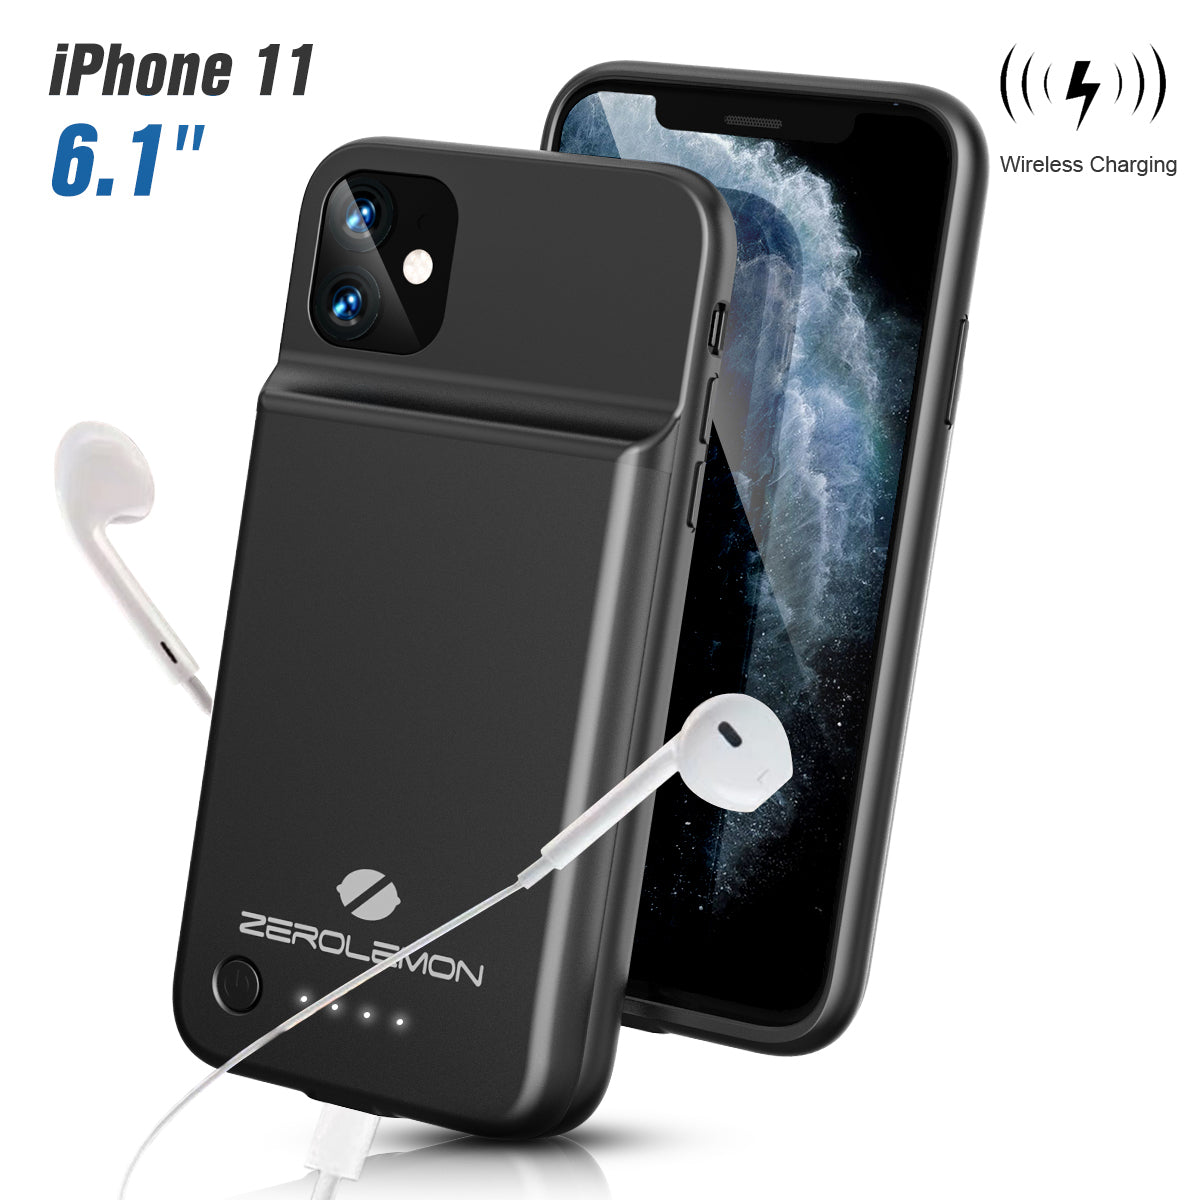 SlimJuicer iPhone 11 4500mAh Wireless Charging Battery Case [Shipping to US Only]